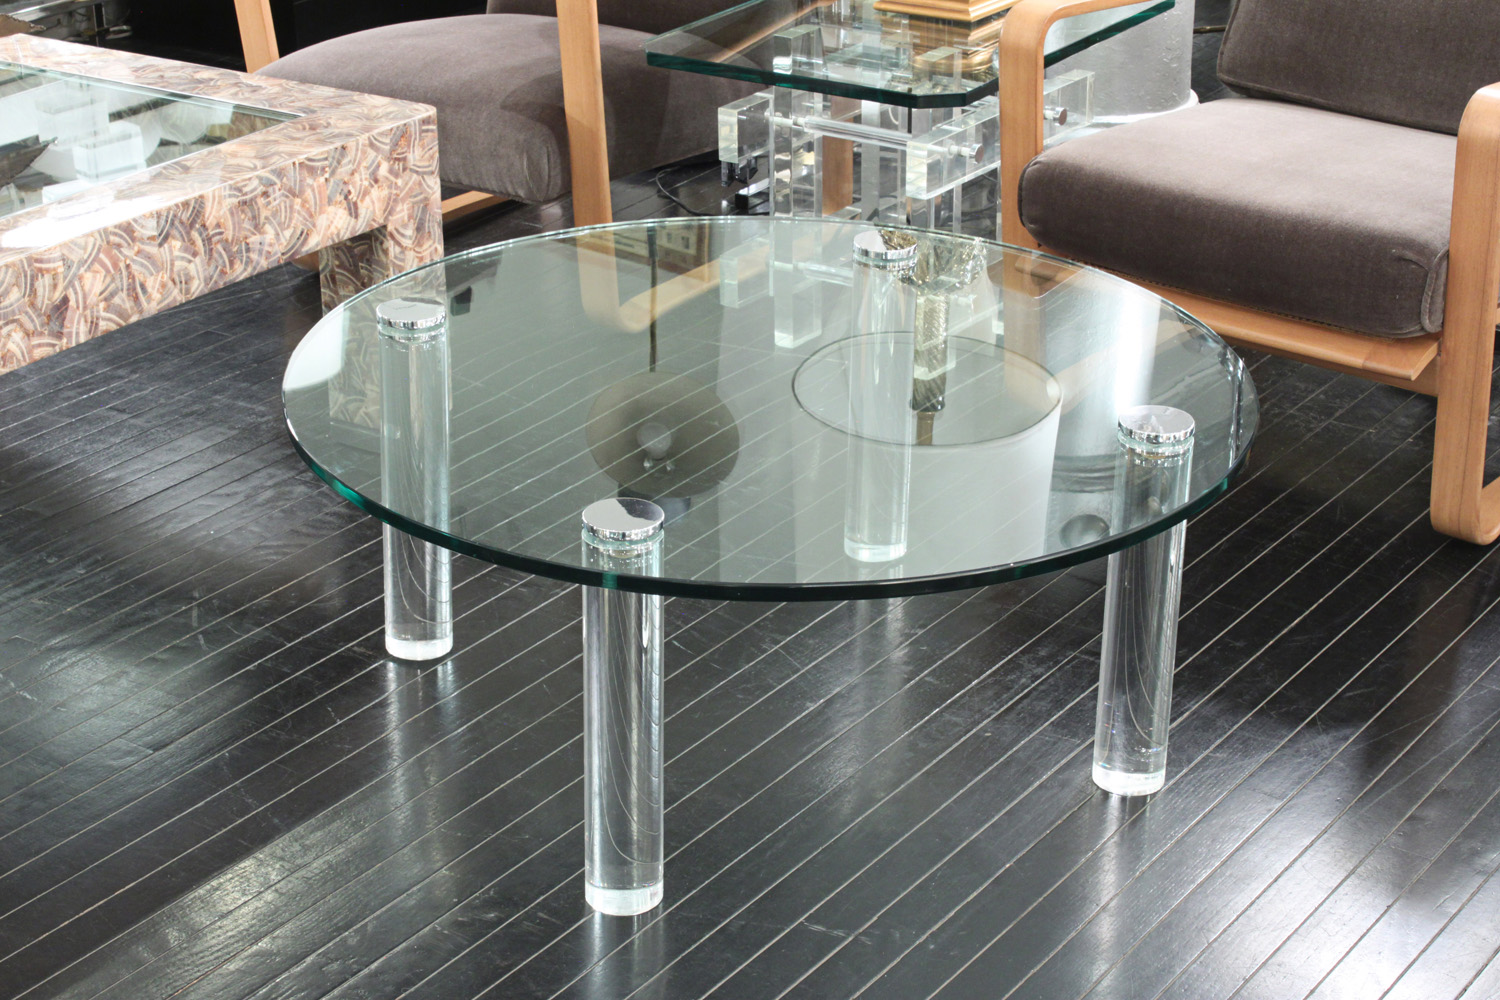 Pace 55 round lucite legs+gls top coffeetable382 detail4 hires.jpg